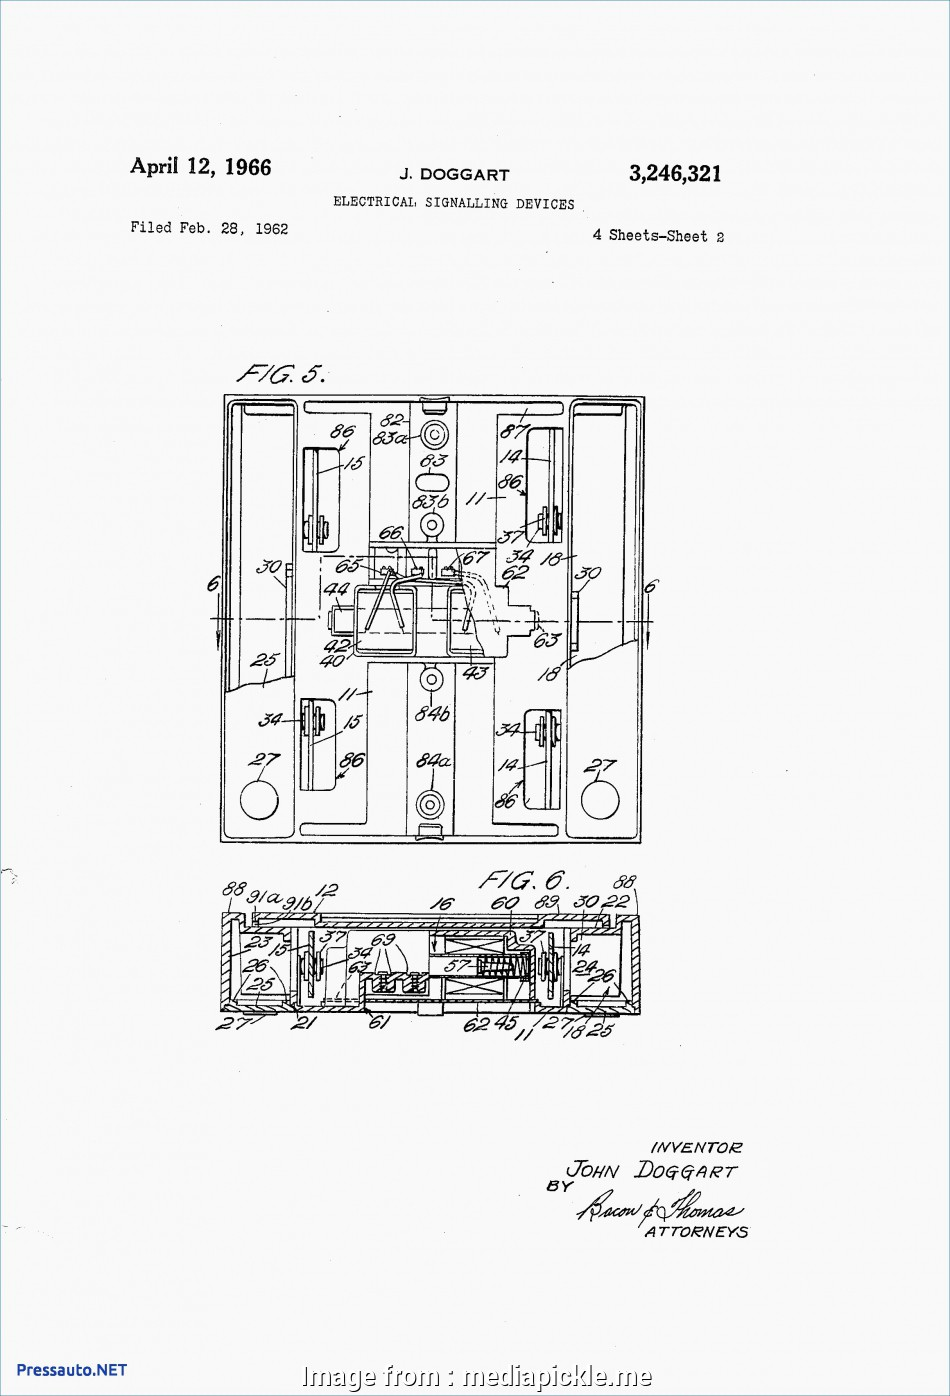 11 Professional Old Friedland Doorbell Wiring Diagram